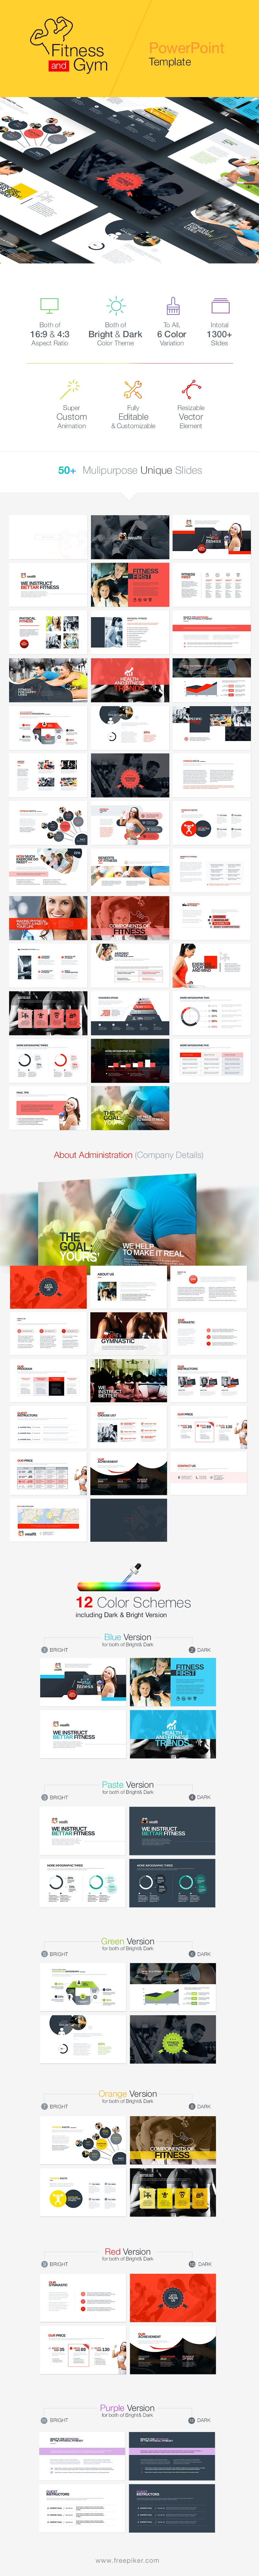 Fitness & Gym Powerpoint | WealthFit